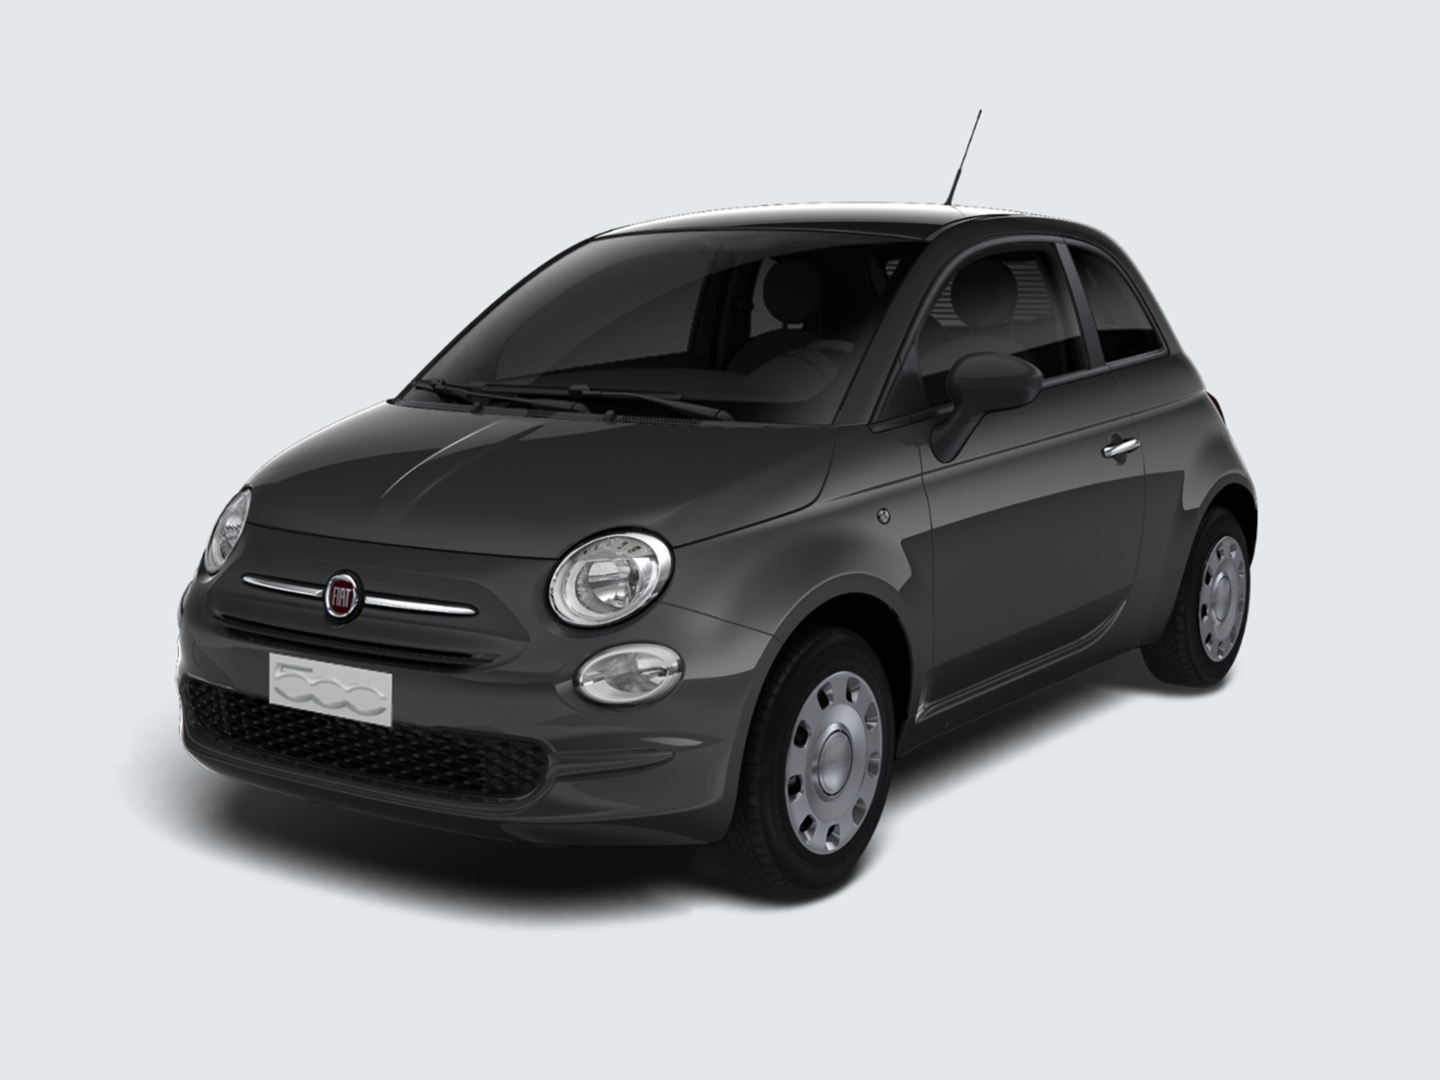 fiat 500 grigio carrara km0 a soli 10480 su miacar 3vily. Black Bedroom Furniture Sets. Home Design Ideas